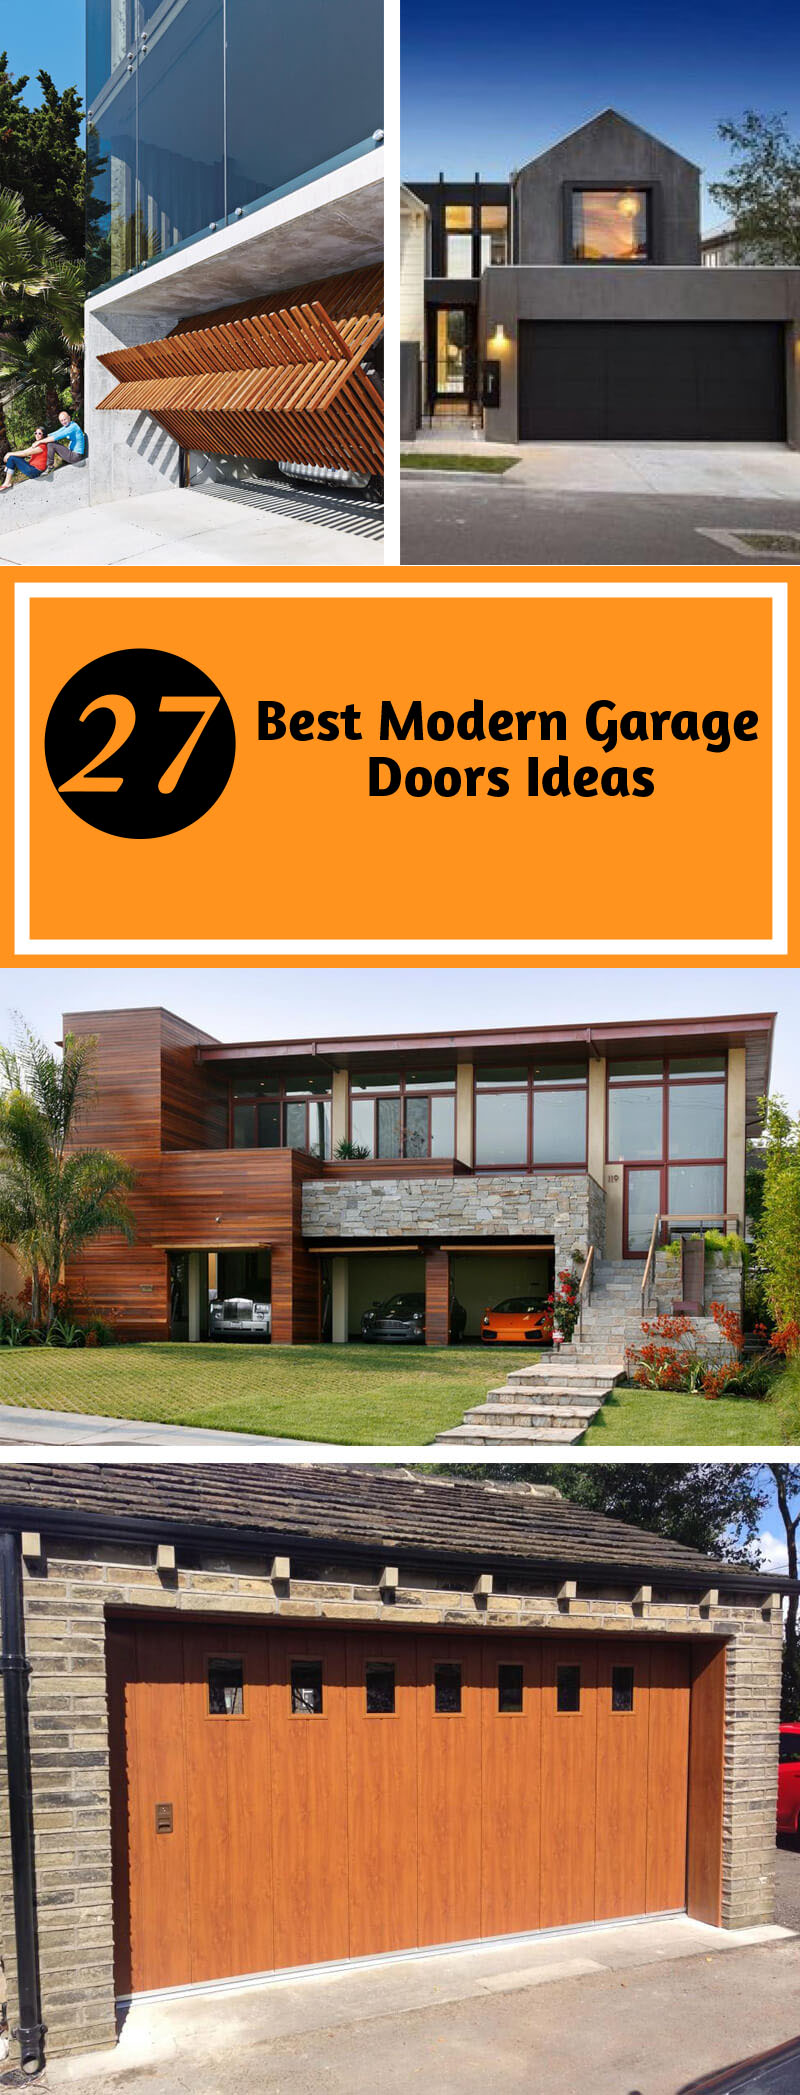 27 Best Modern Garage Doors Ideas and Designs For Your Inspiration